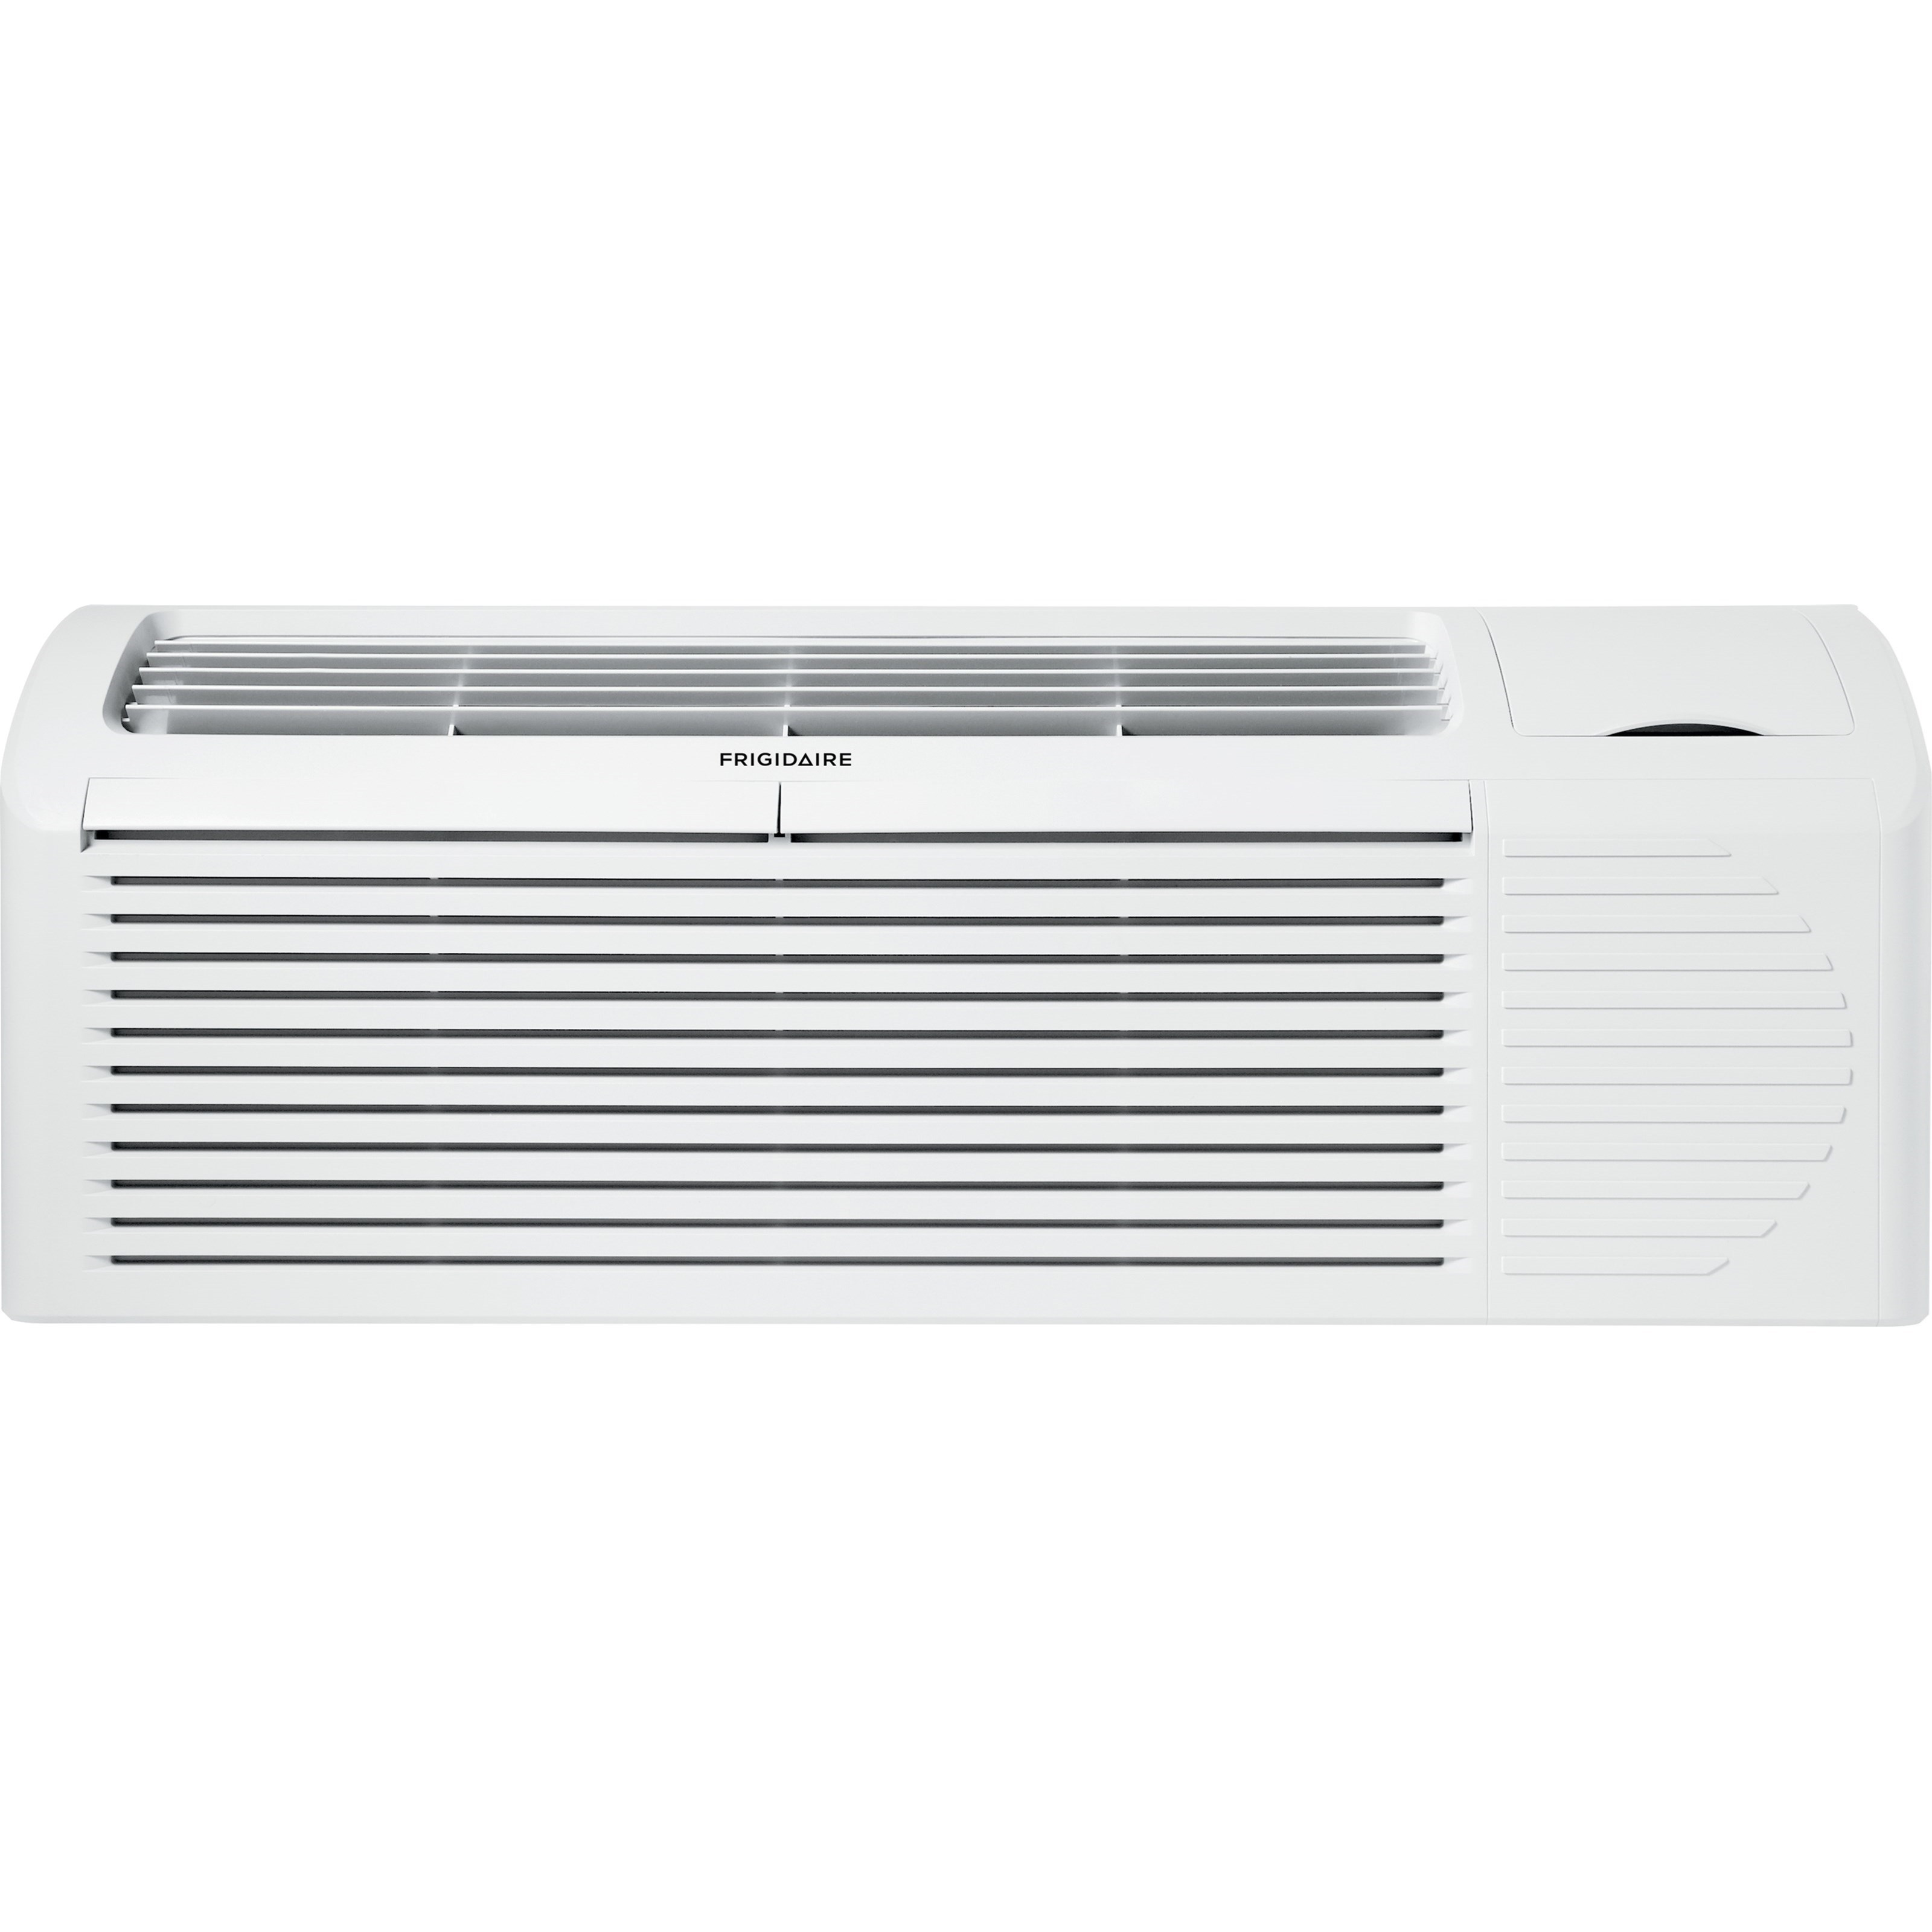 Air Conditioners PTAC unit with Electric Heat 15,000 BTU by Frigidaire at Westrich Furniture & Appliances